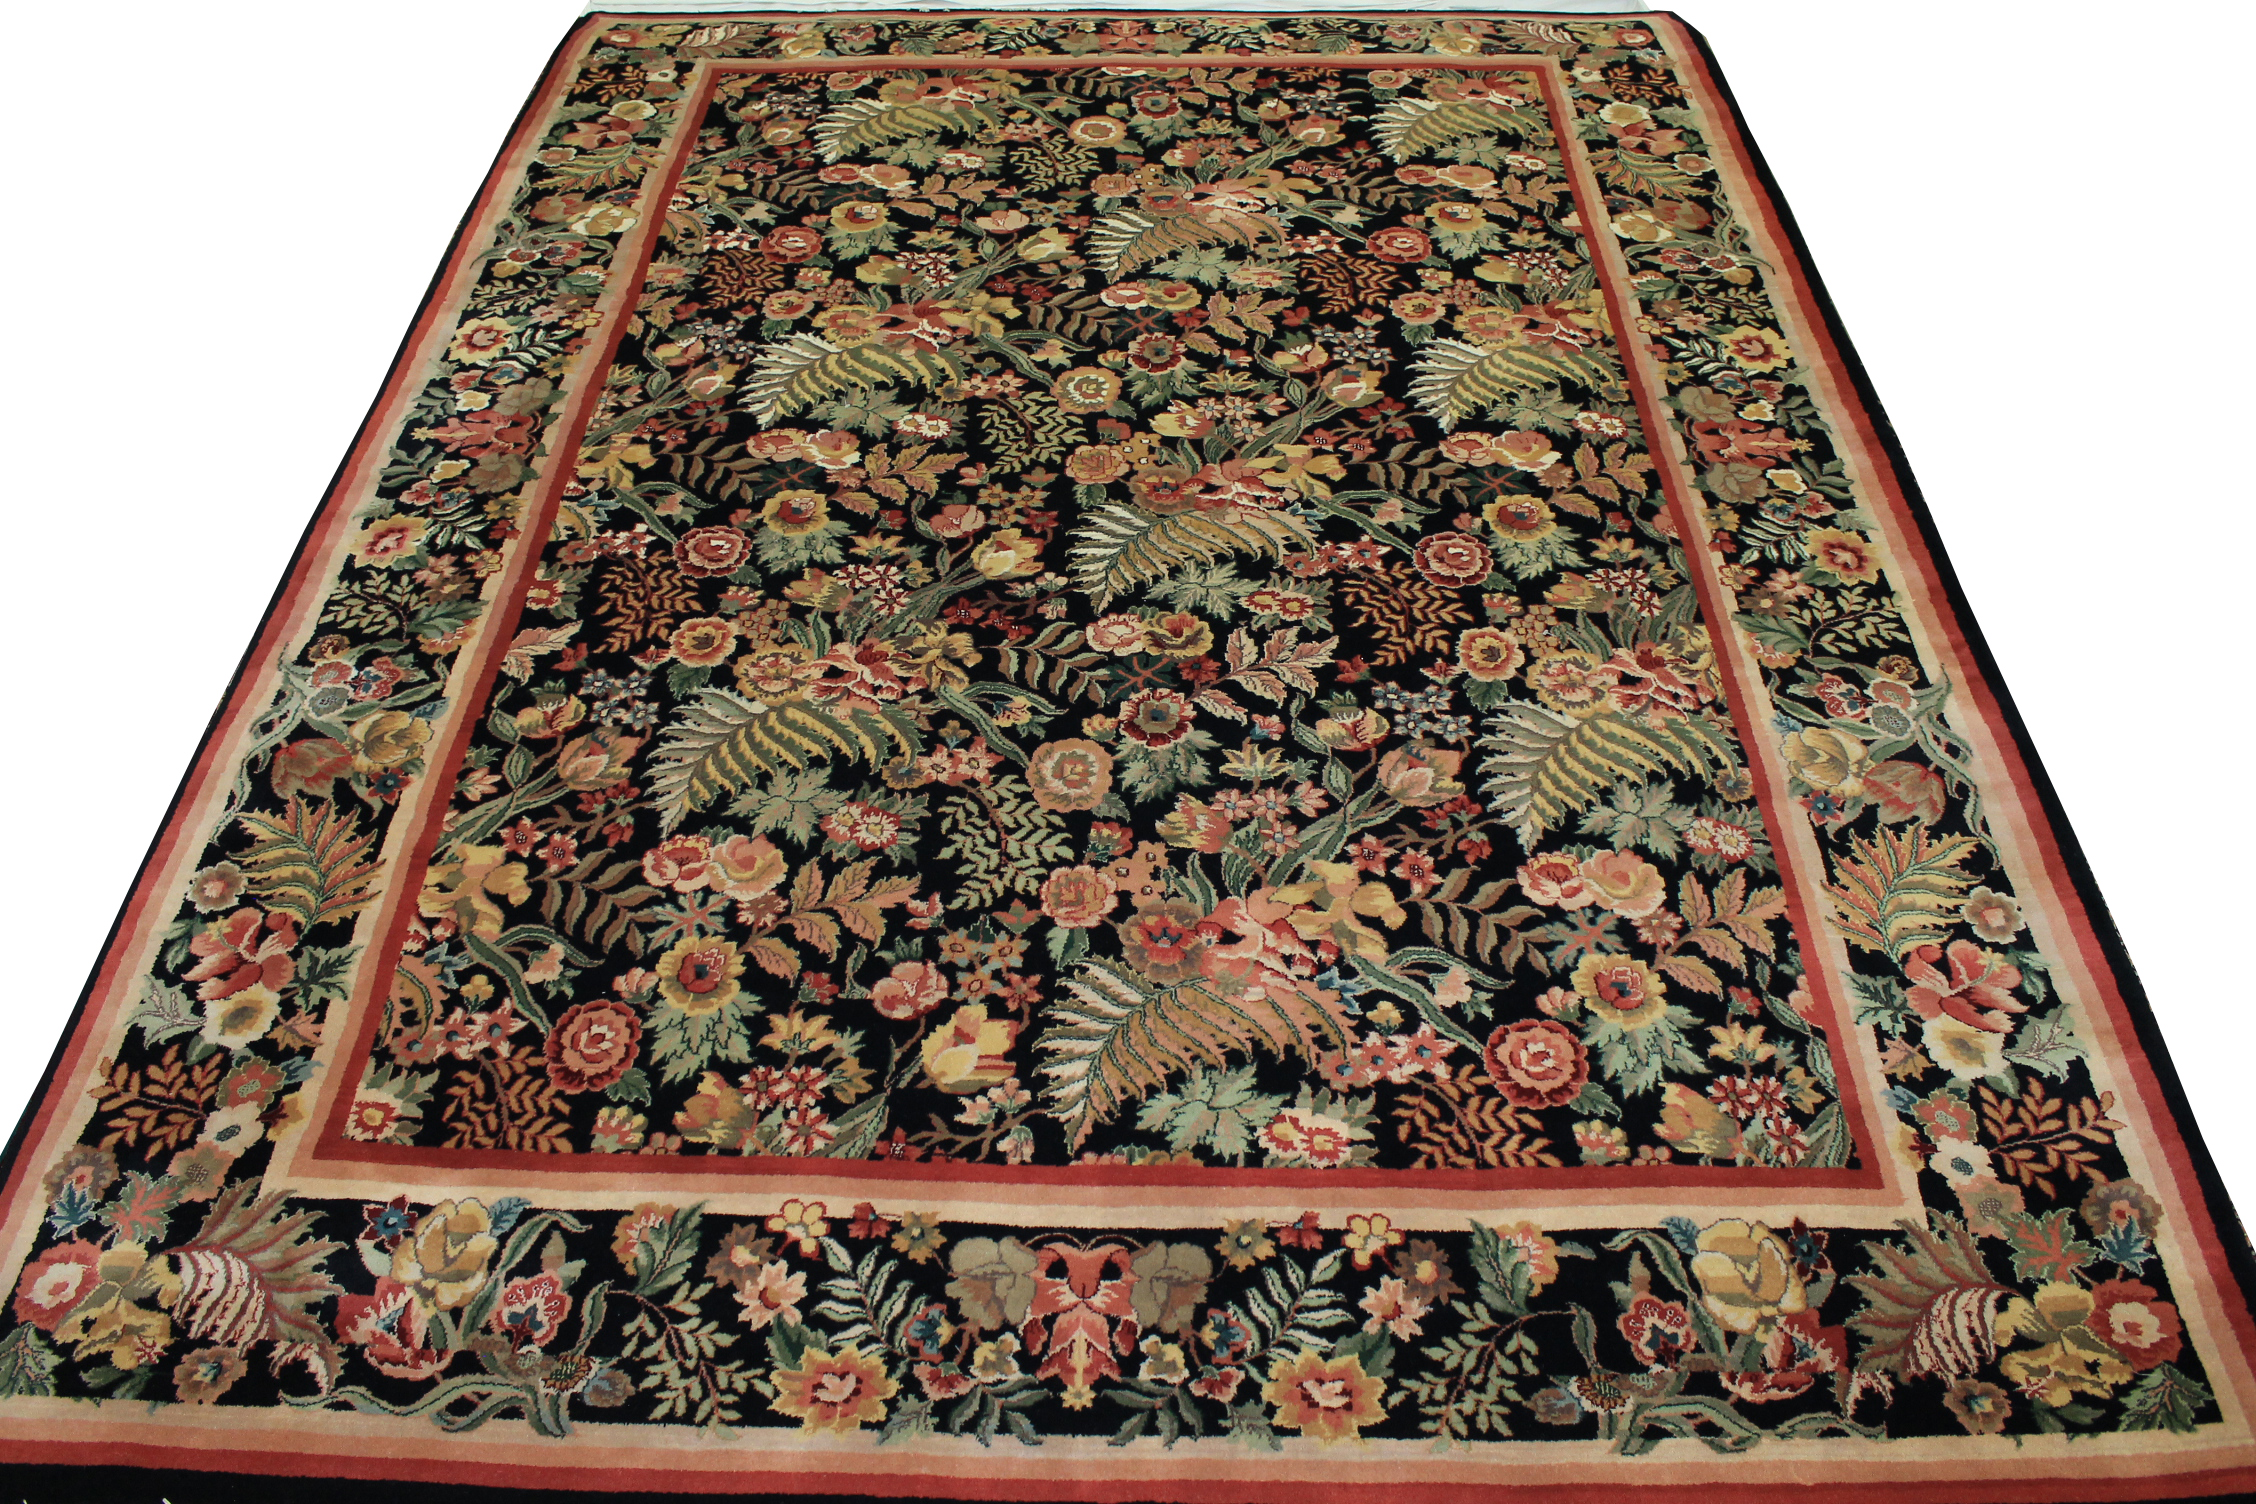 9x12 Traditional Hand Knotted Wool Area Rug - MR0775